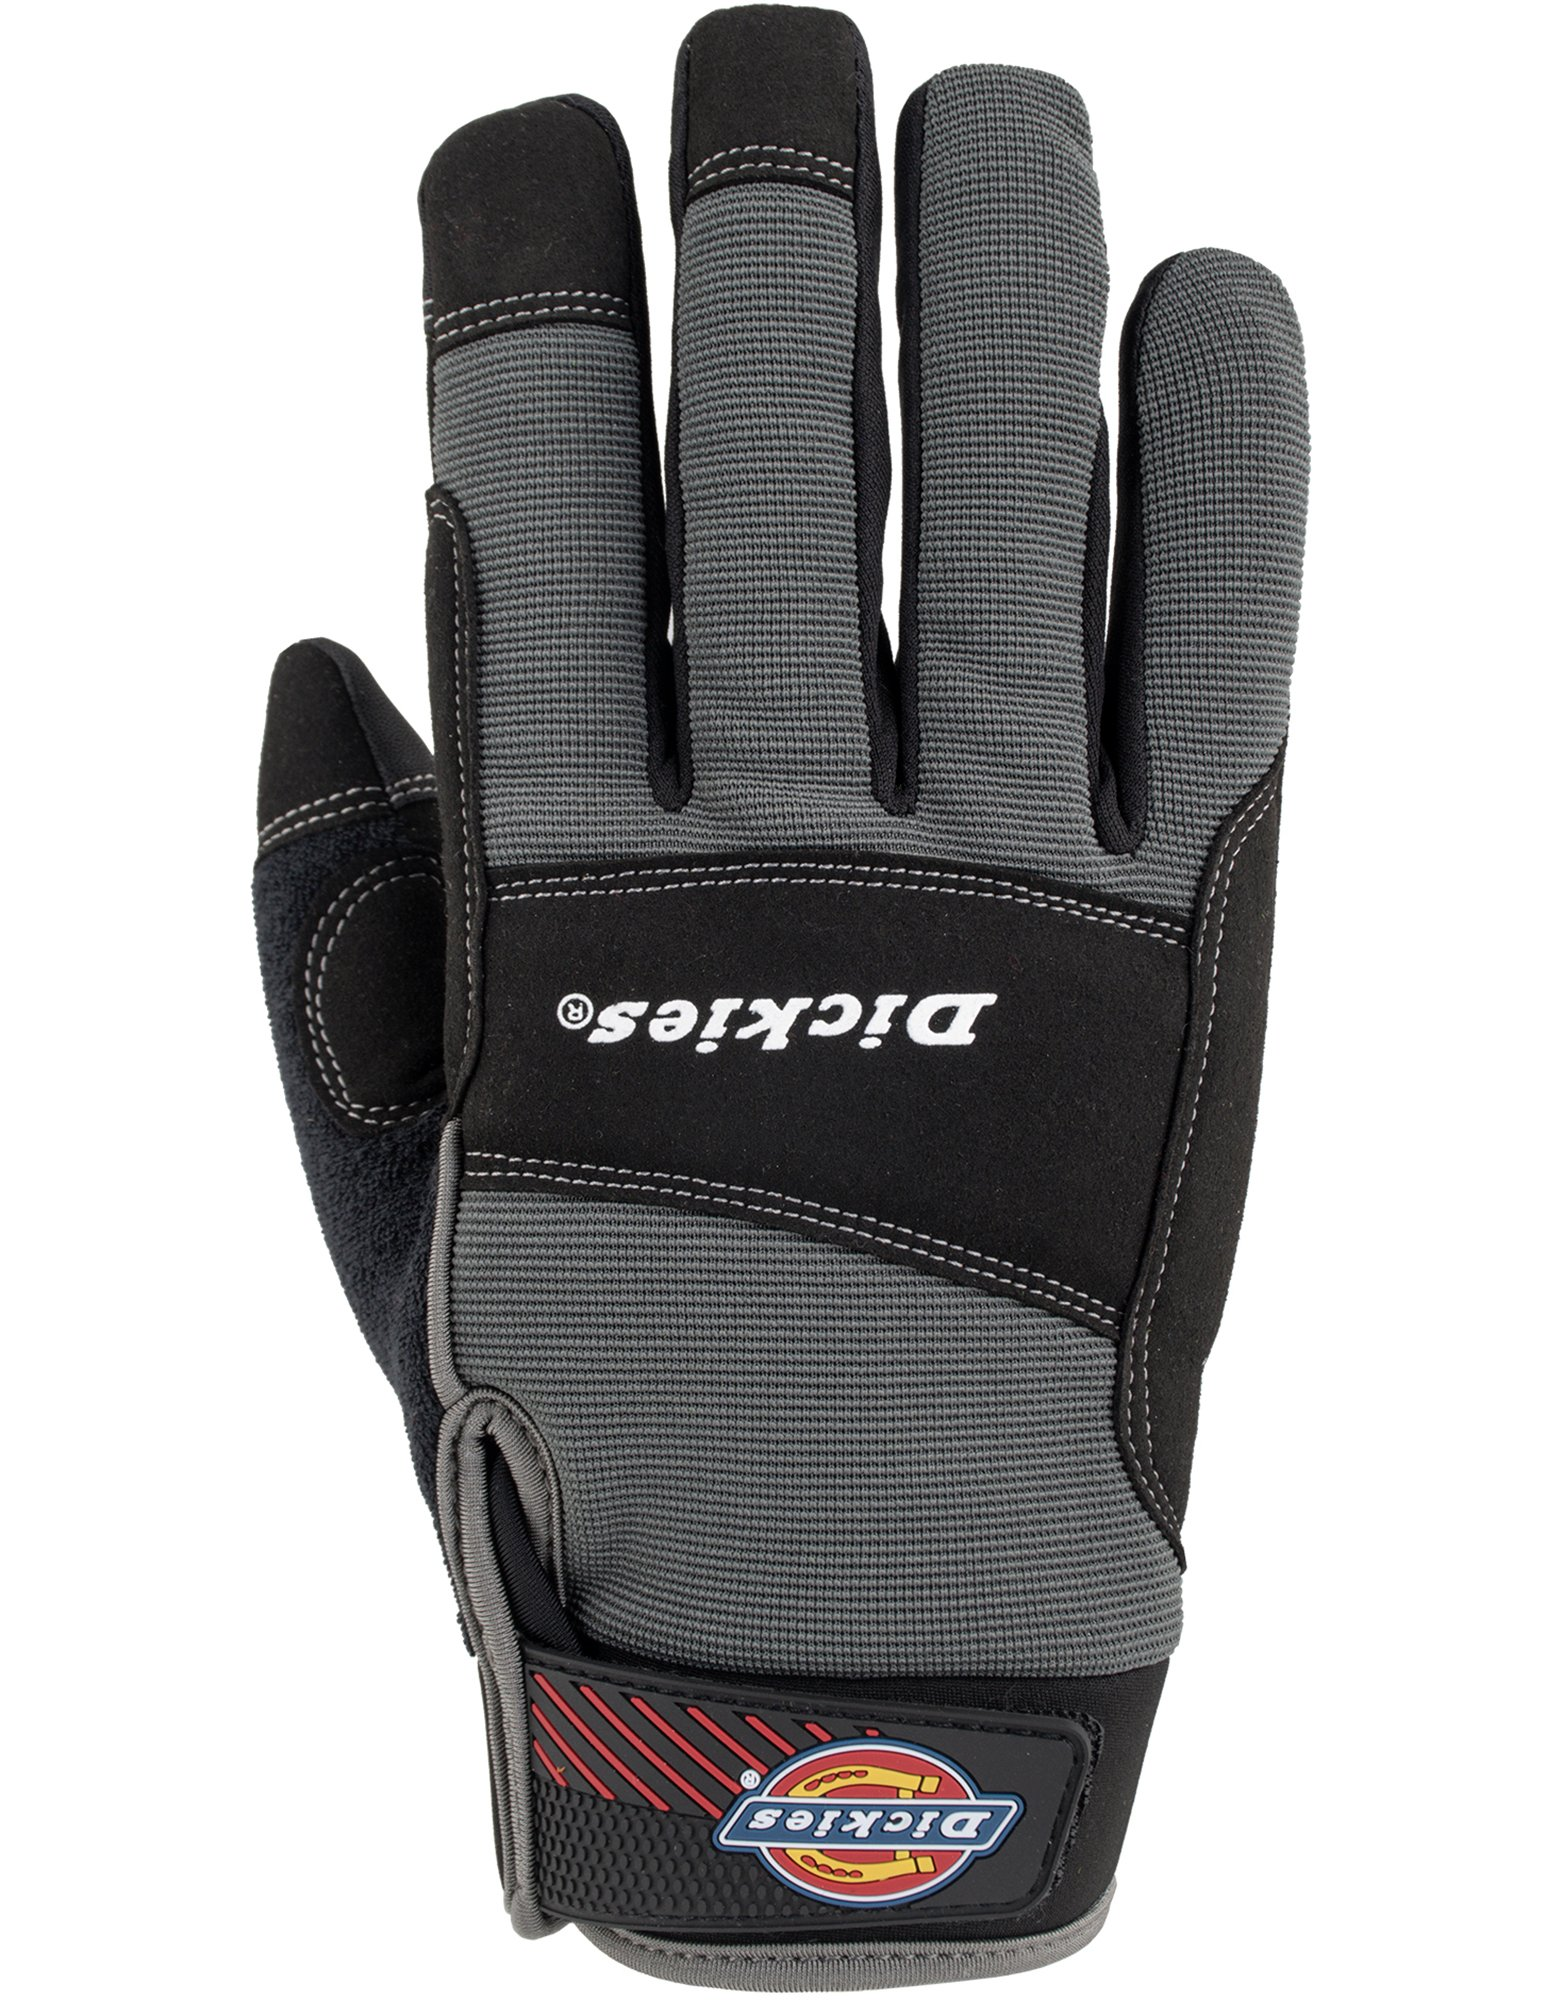 Performance Gloves with Breathable Padding - Charcoal Gray (CH)